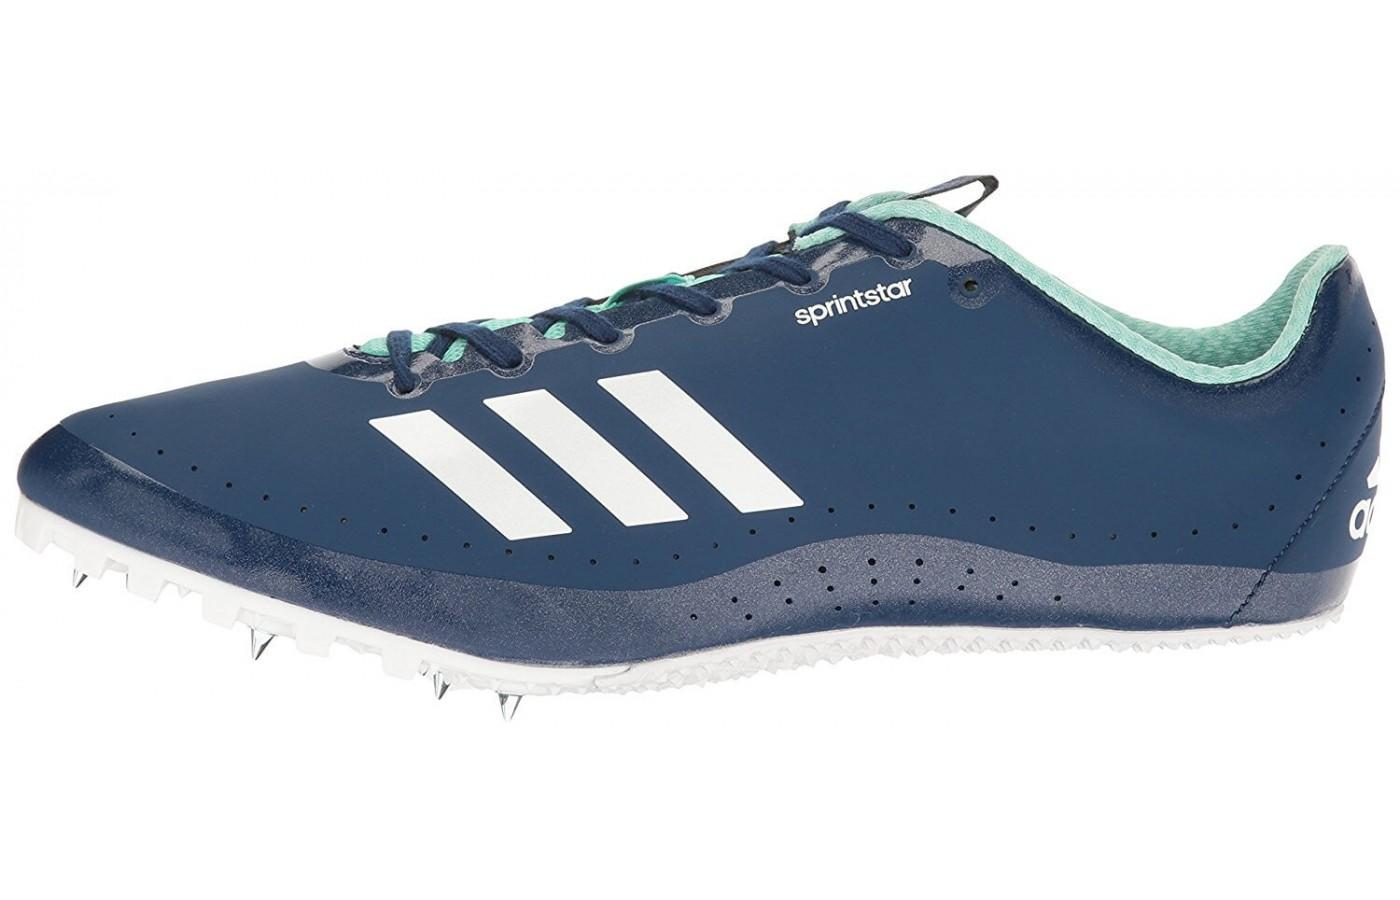 The Adidas Sprintstar is designed for racing up to 400 meters